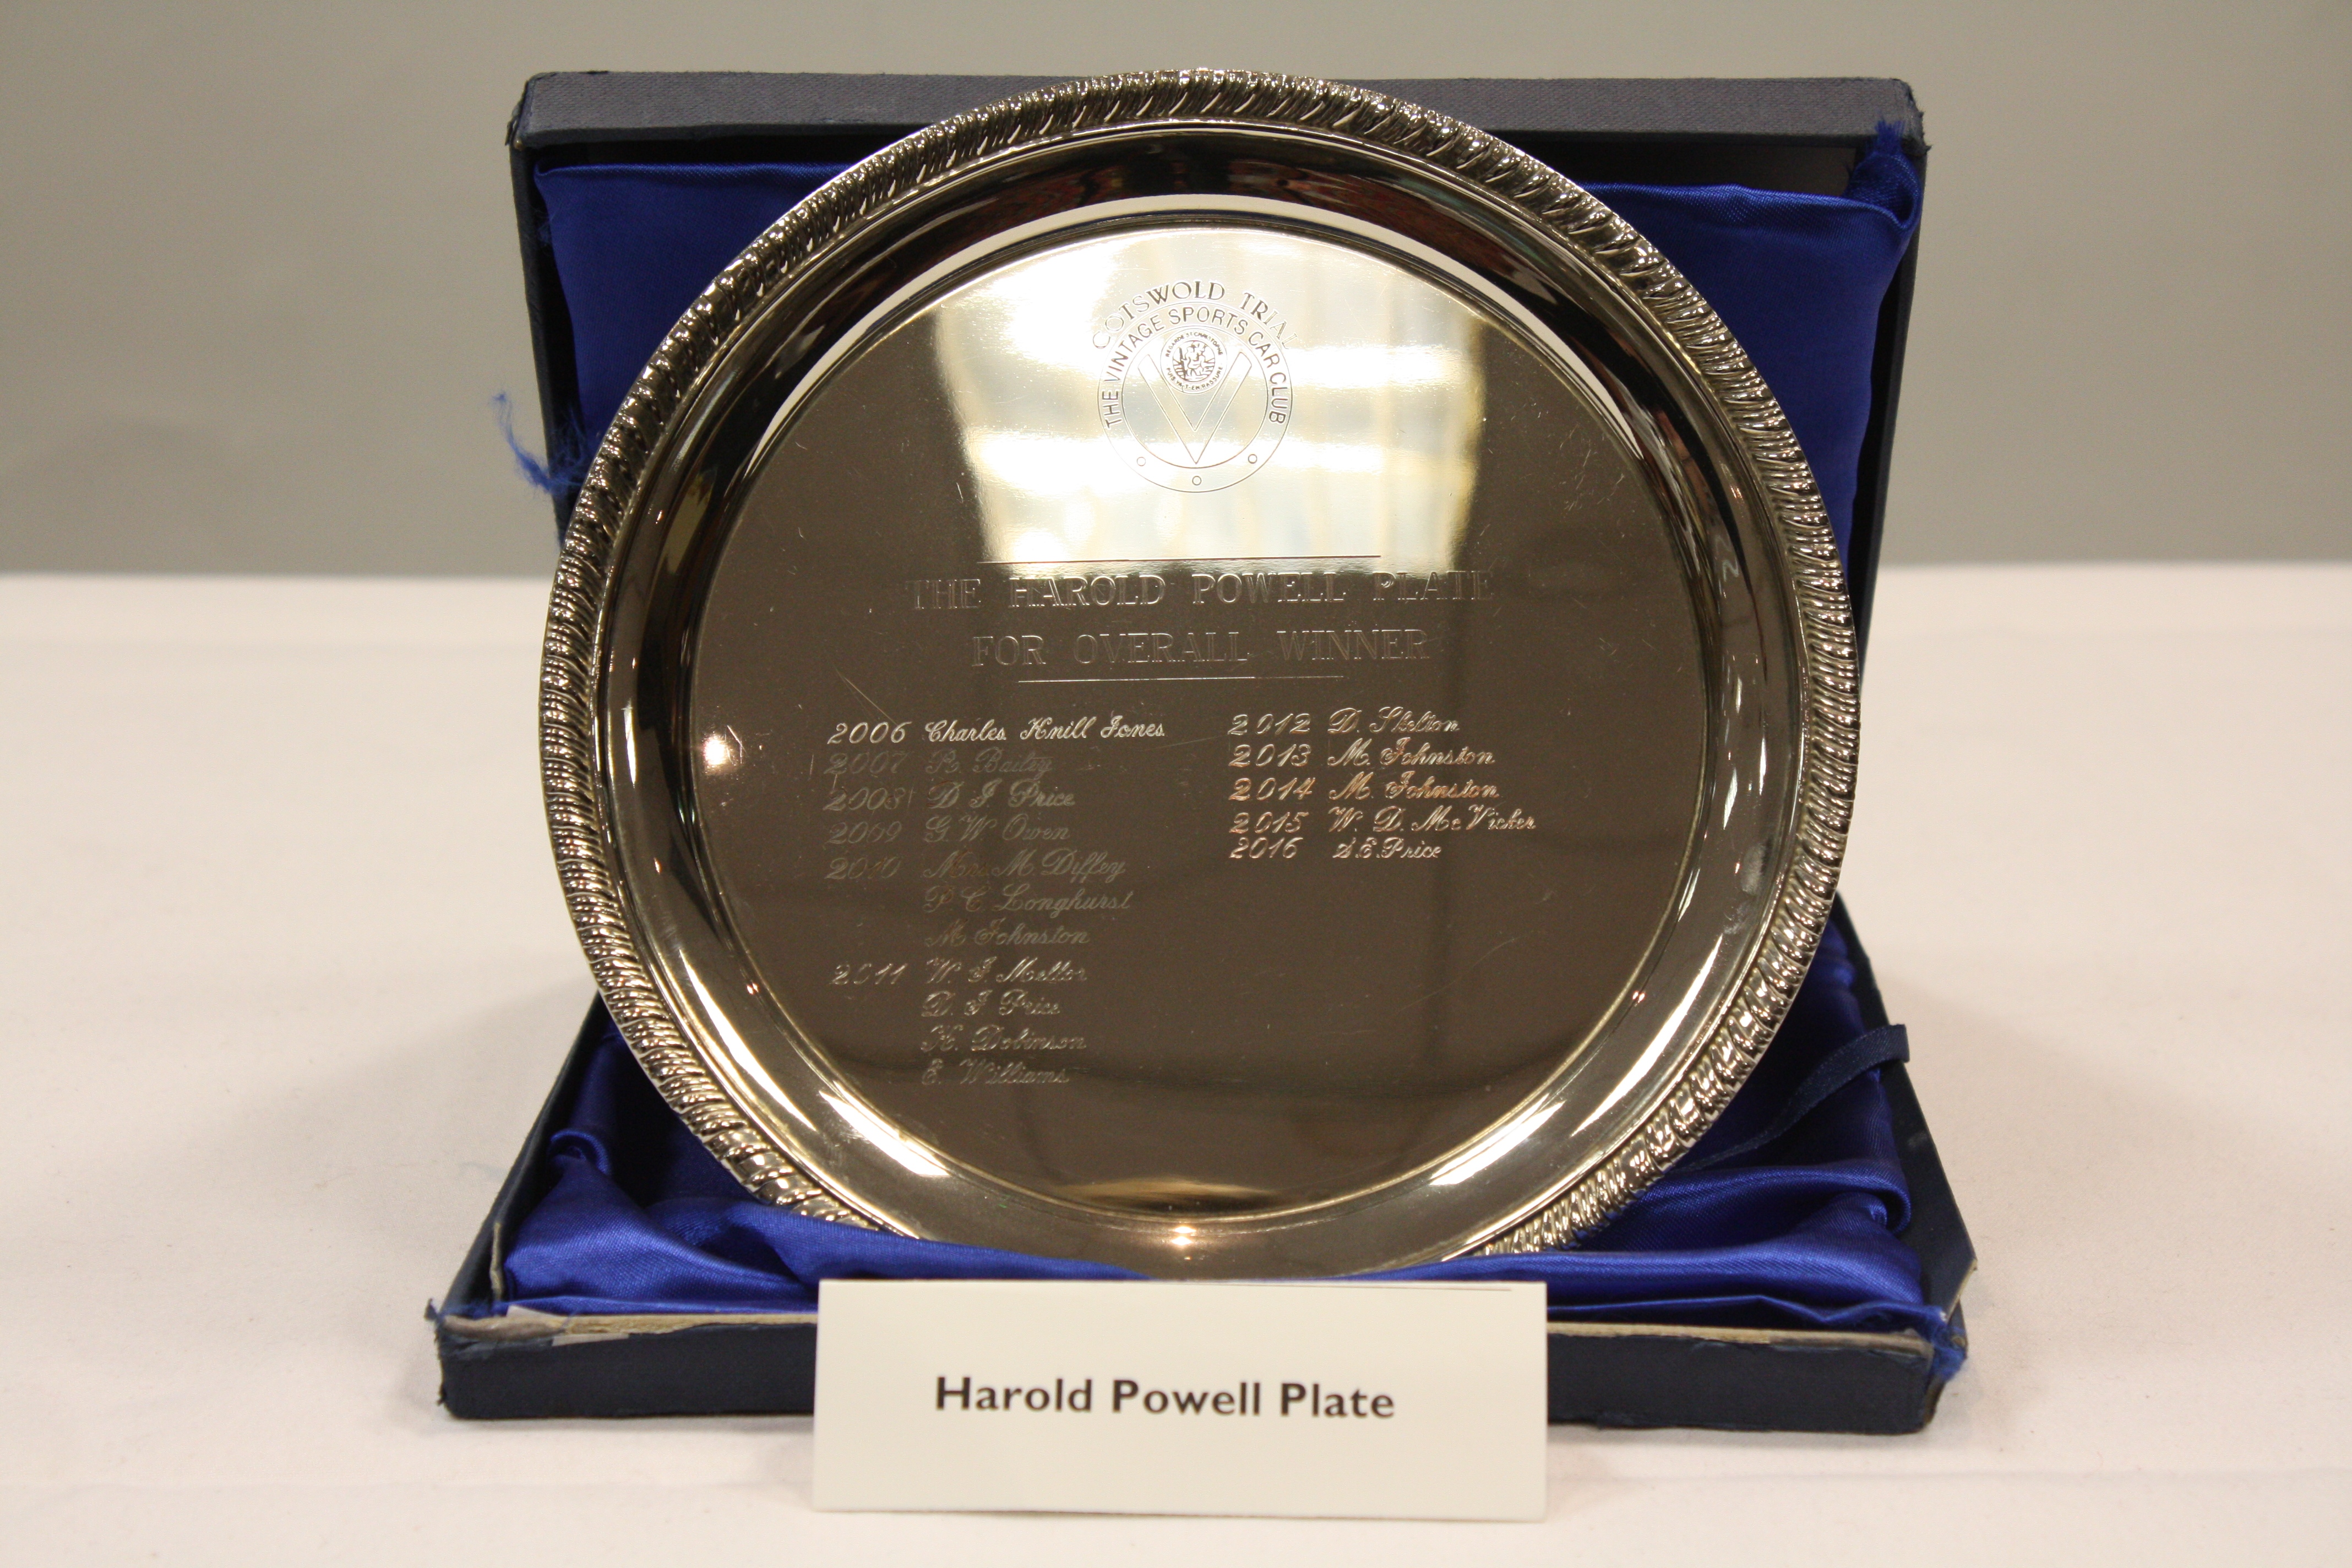 HAROLD POWELL CUP cover